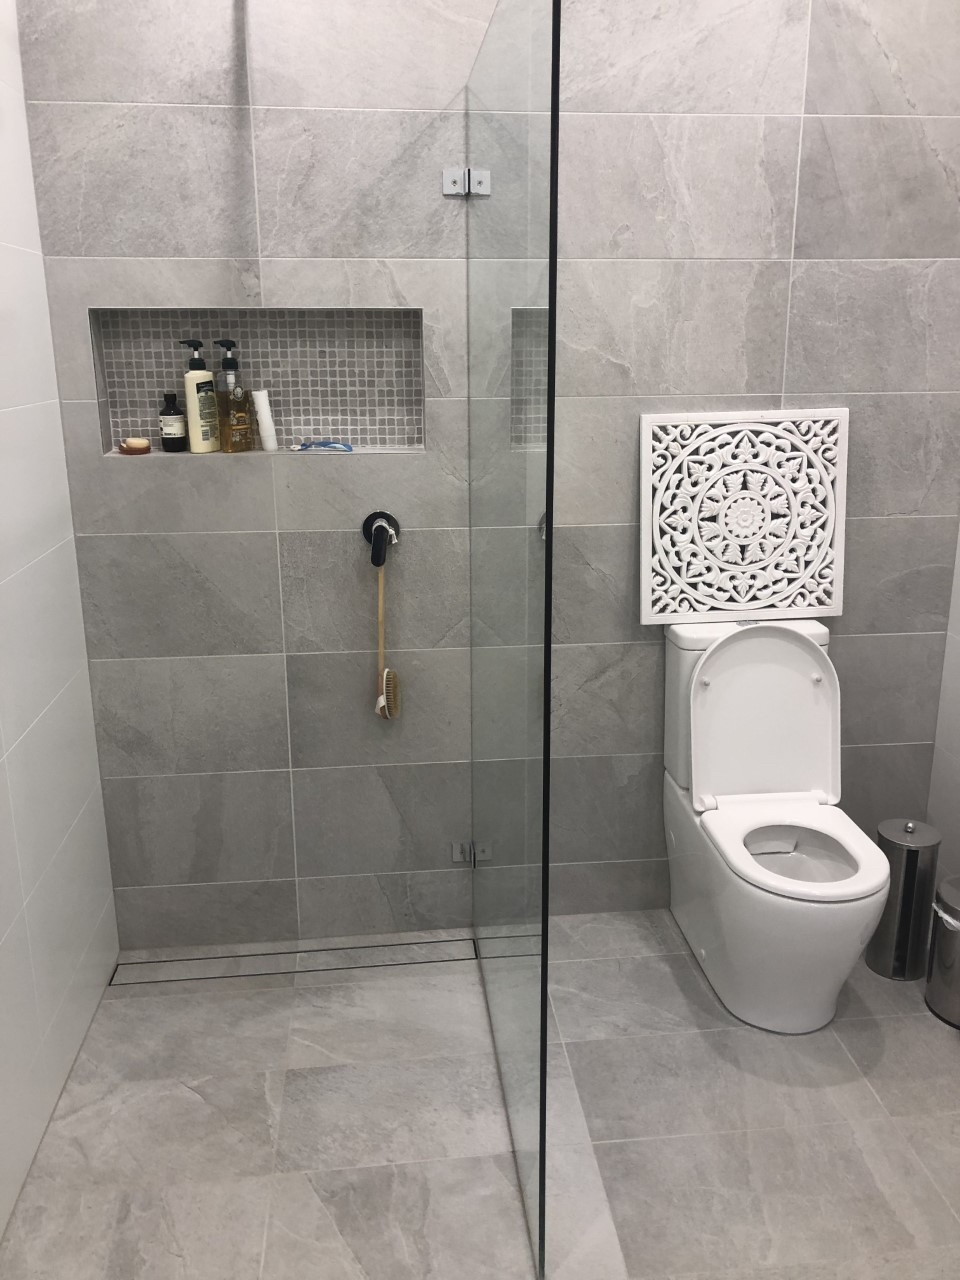 Walkin Shower Lindfield from Bathroom Renovation Project